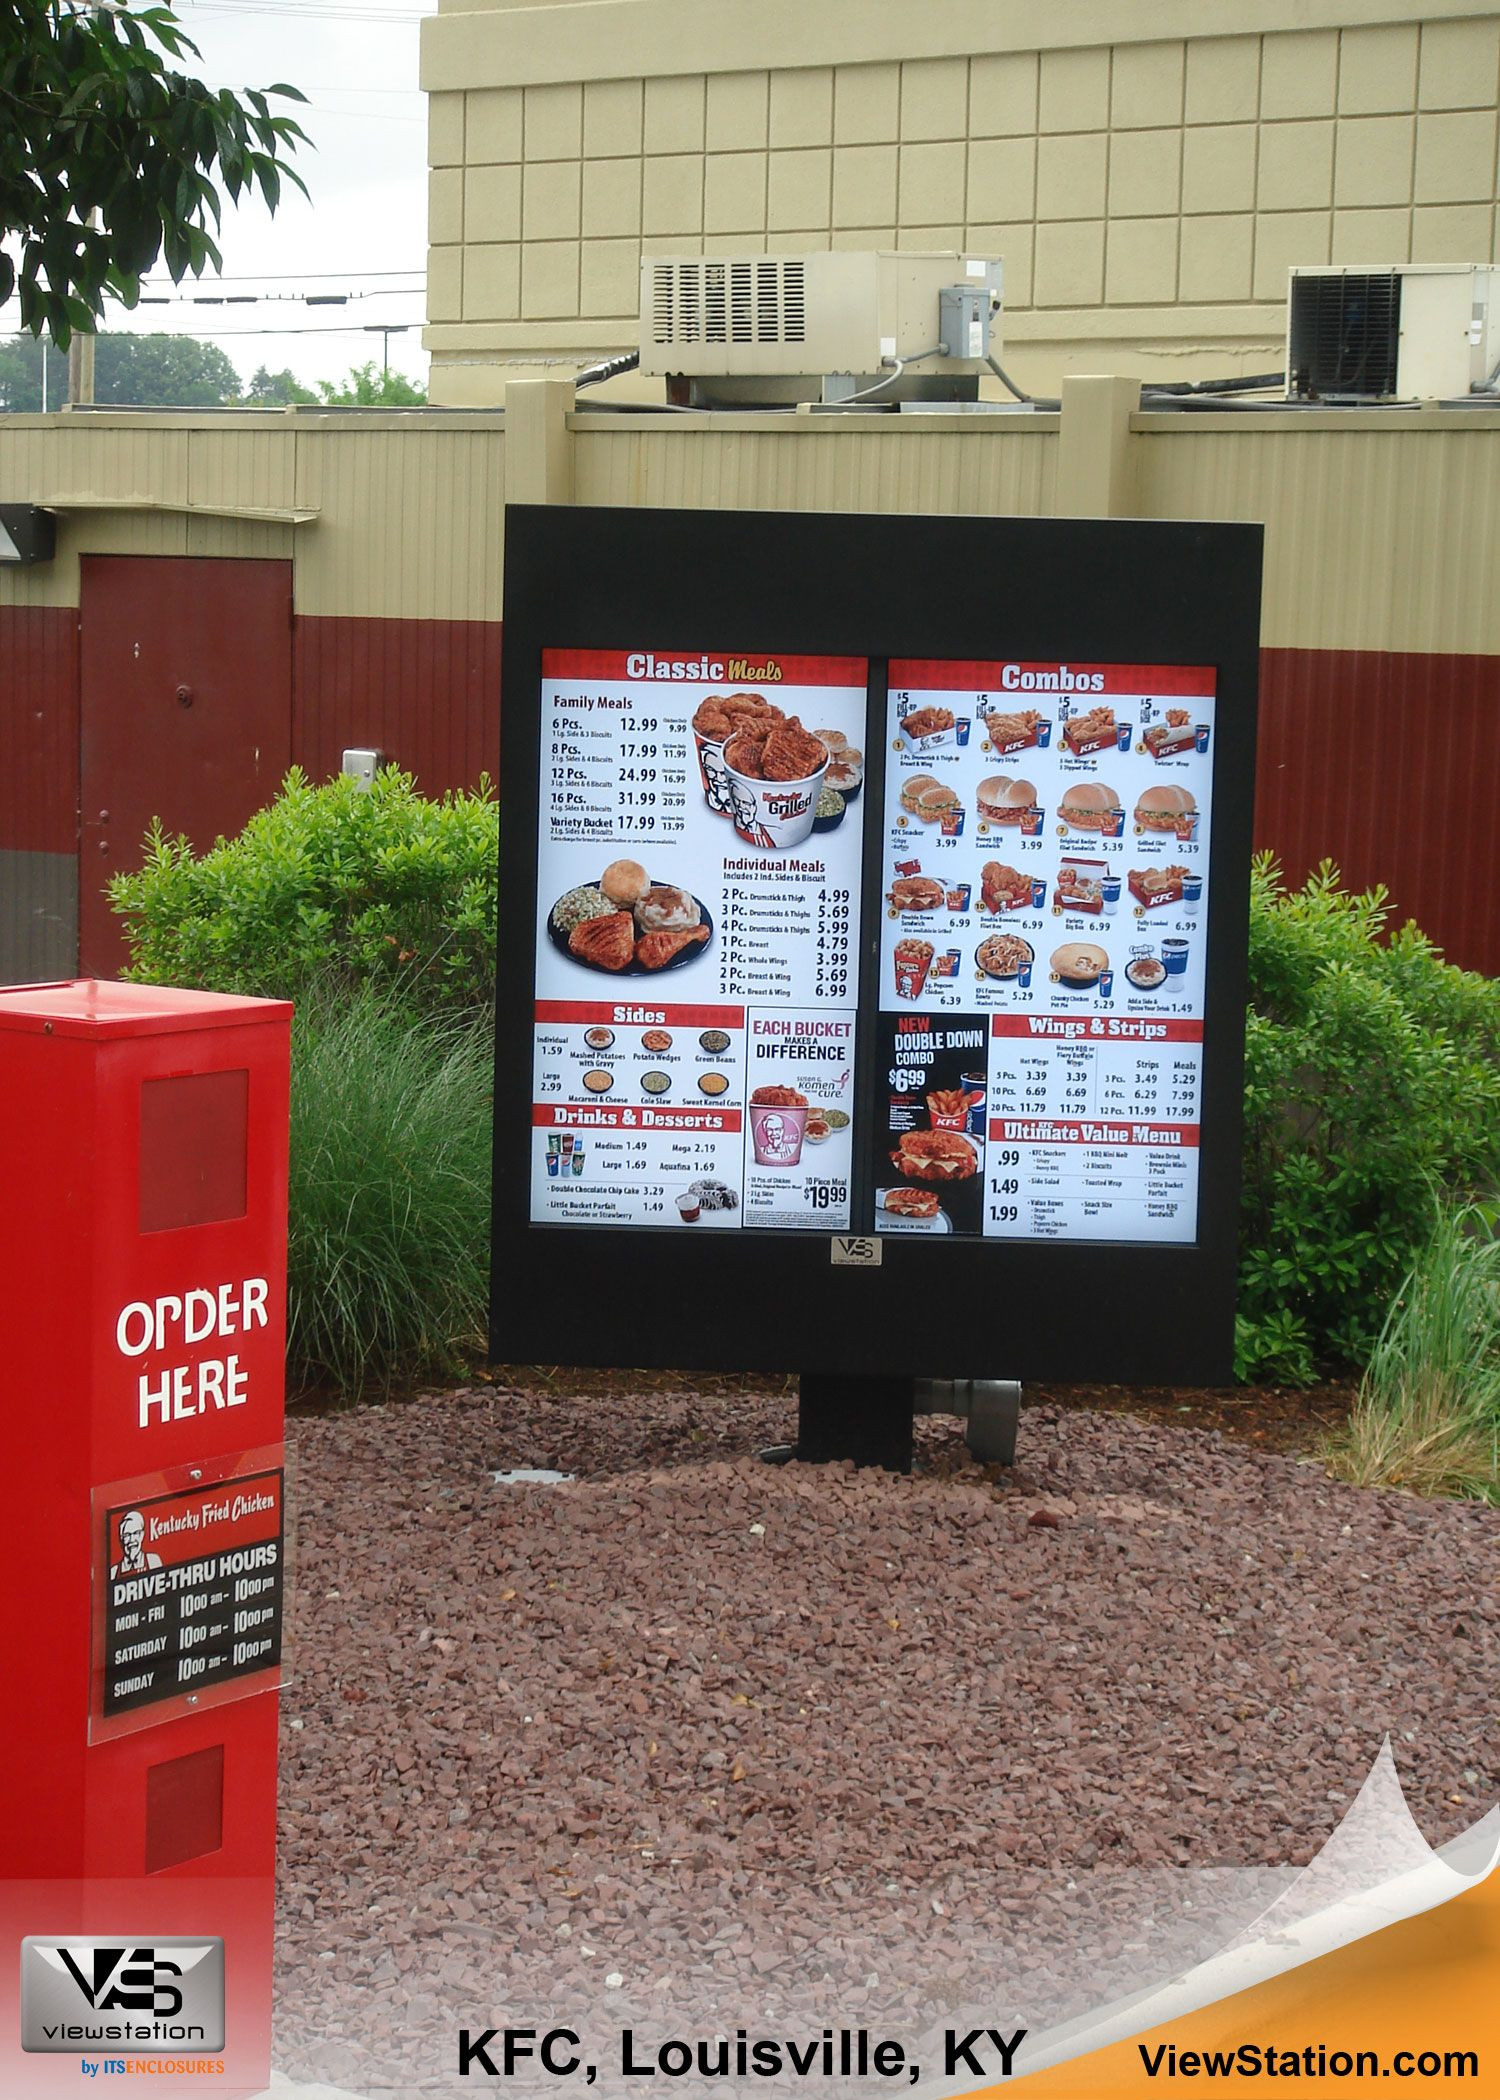 KFC Kentucky Fried Chicken Louisville KY Digital Menu Boards for Drive Thru ViewStation QSR by ITSNENCLOSURES ViewStation